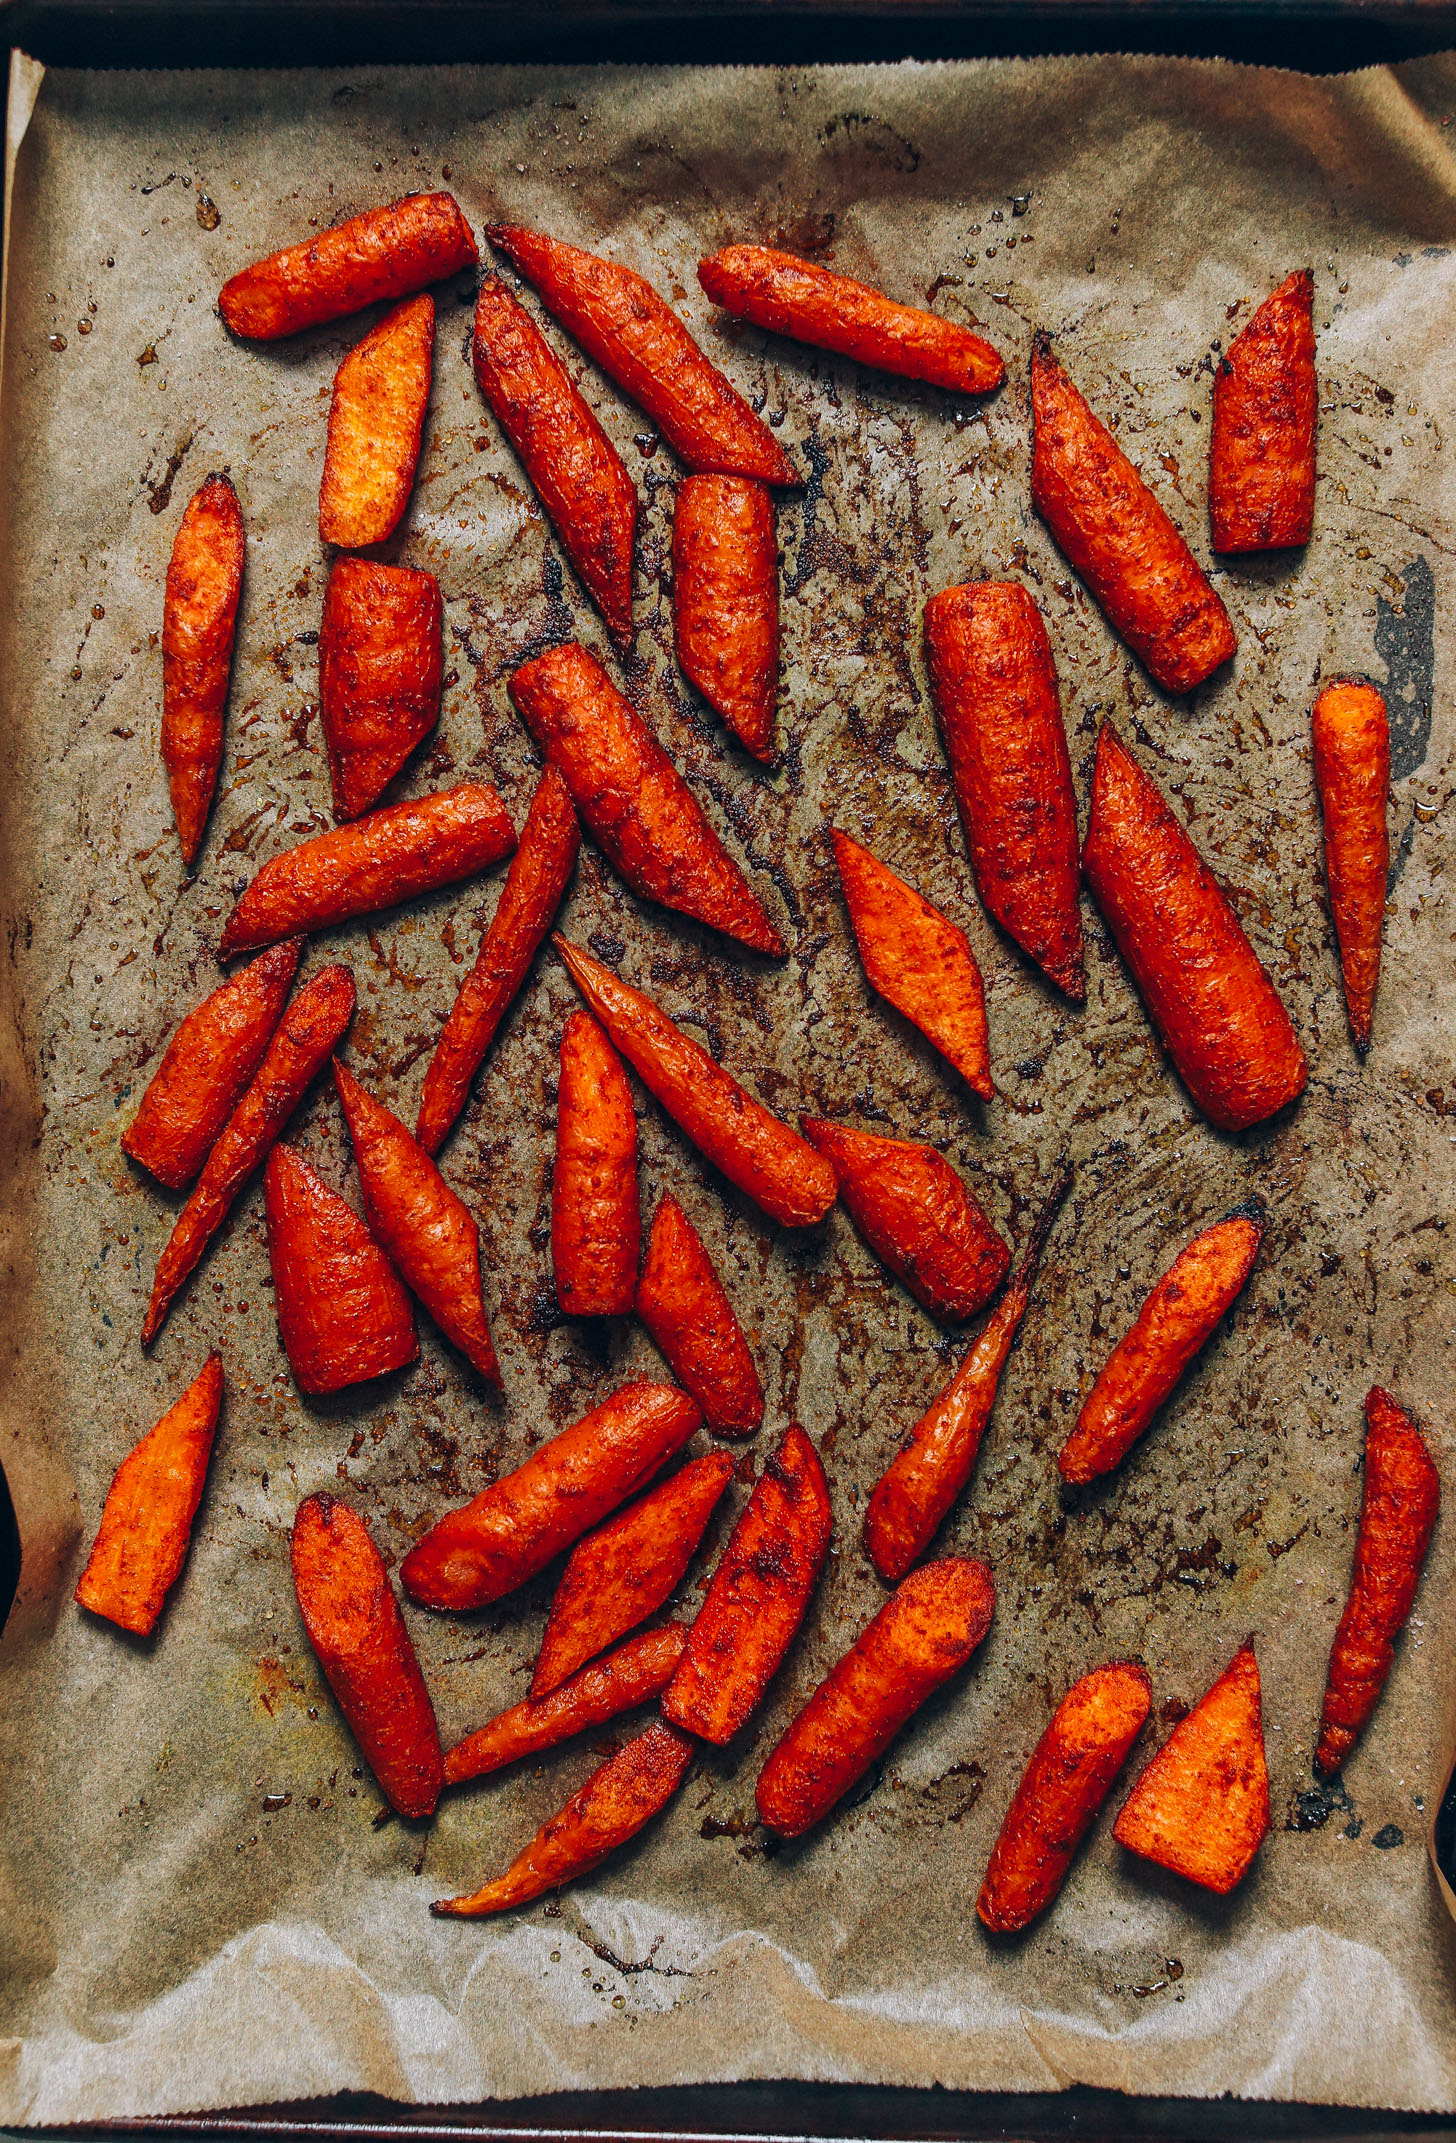 Perfectly roasted carrots on a parchment-lined baking sheet